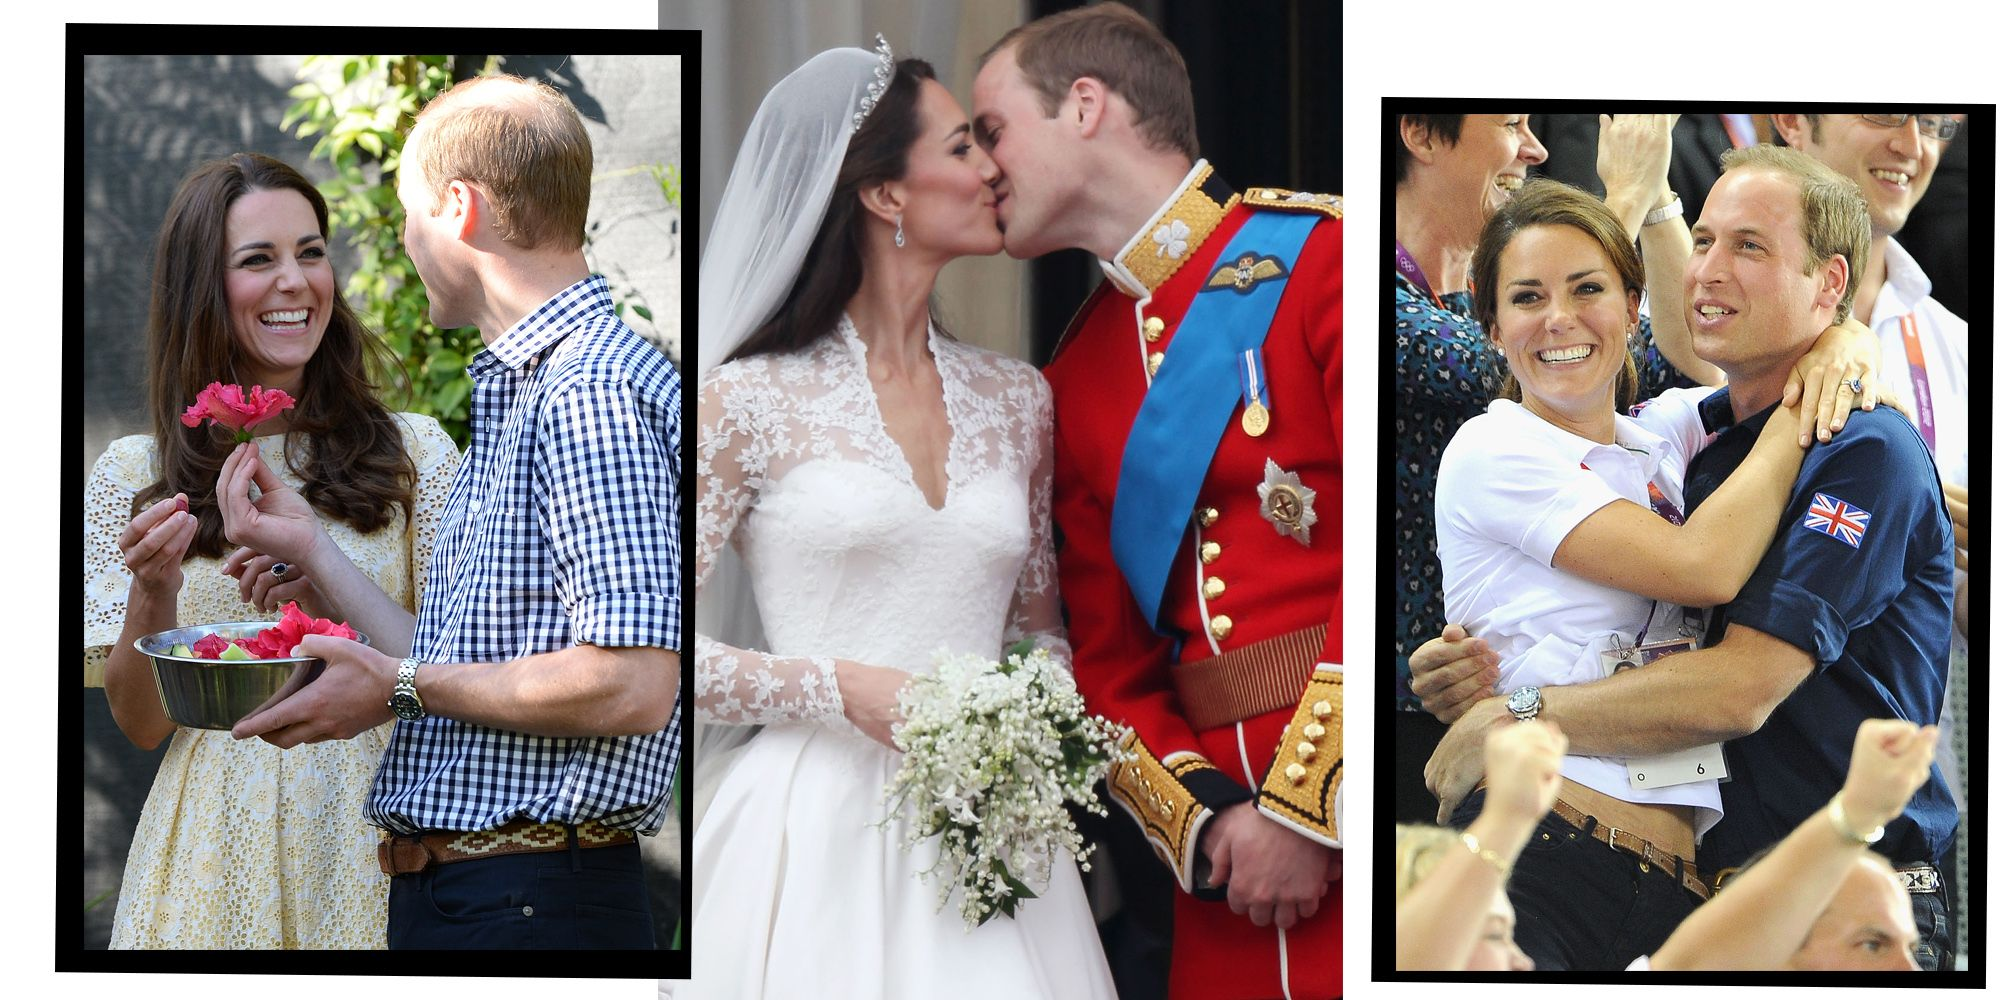 16 Of Kate Middleton And Prince William's Sweetest PDA Moments, From Royal Wedding To Overseas Tours